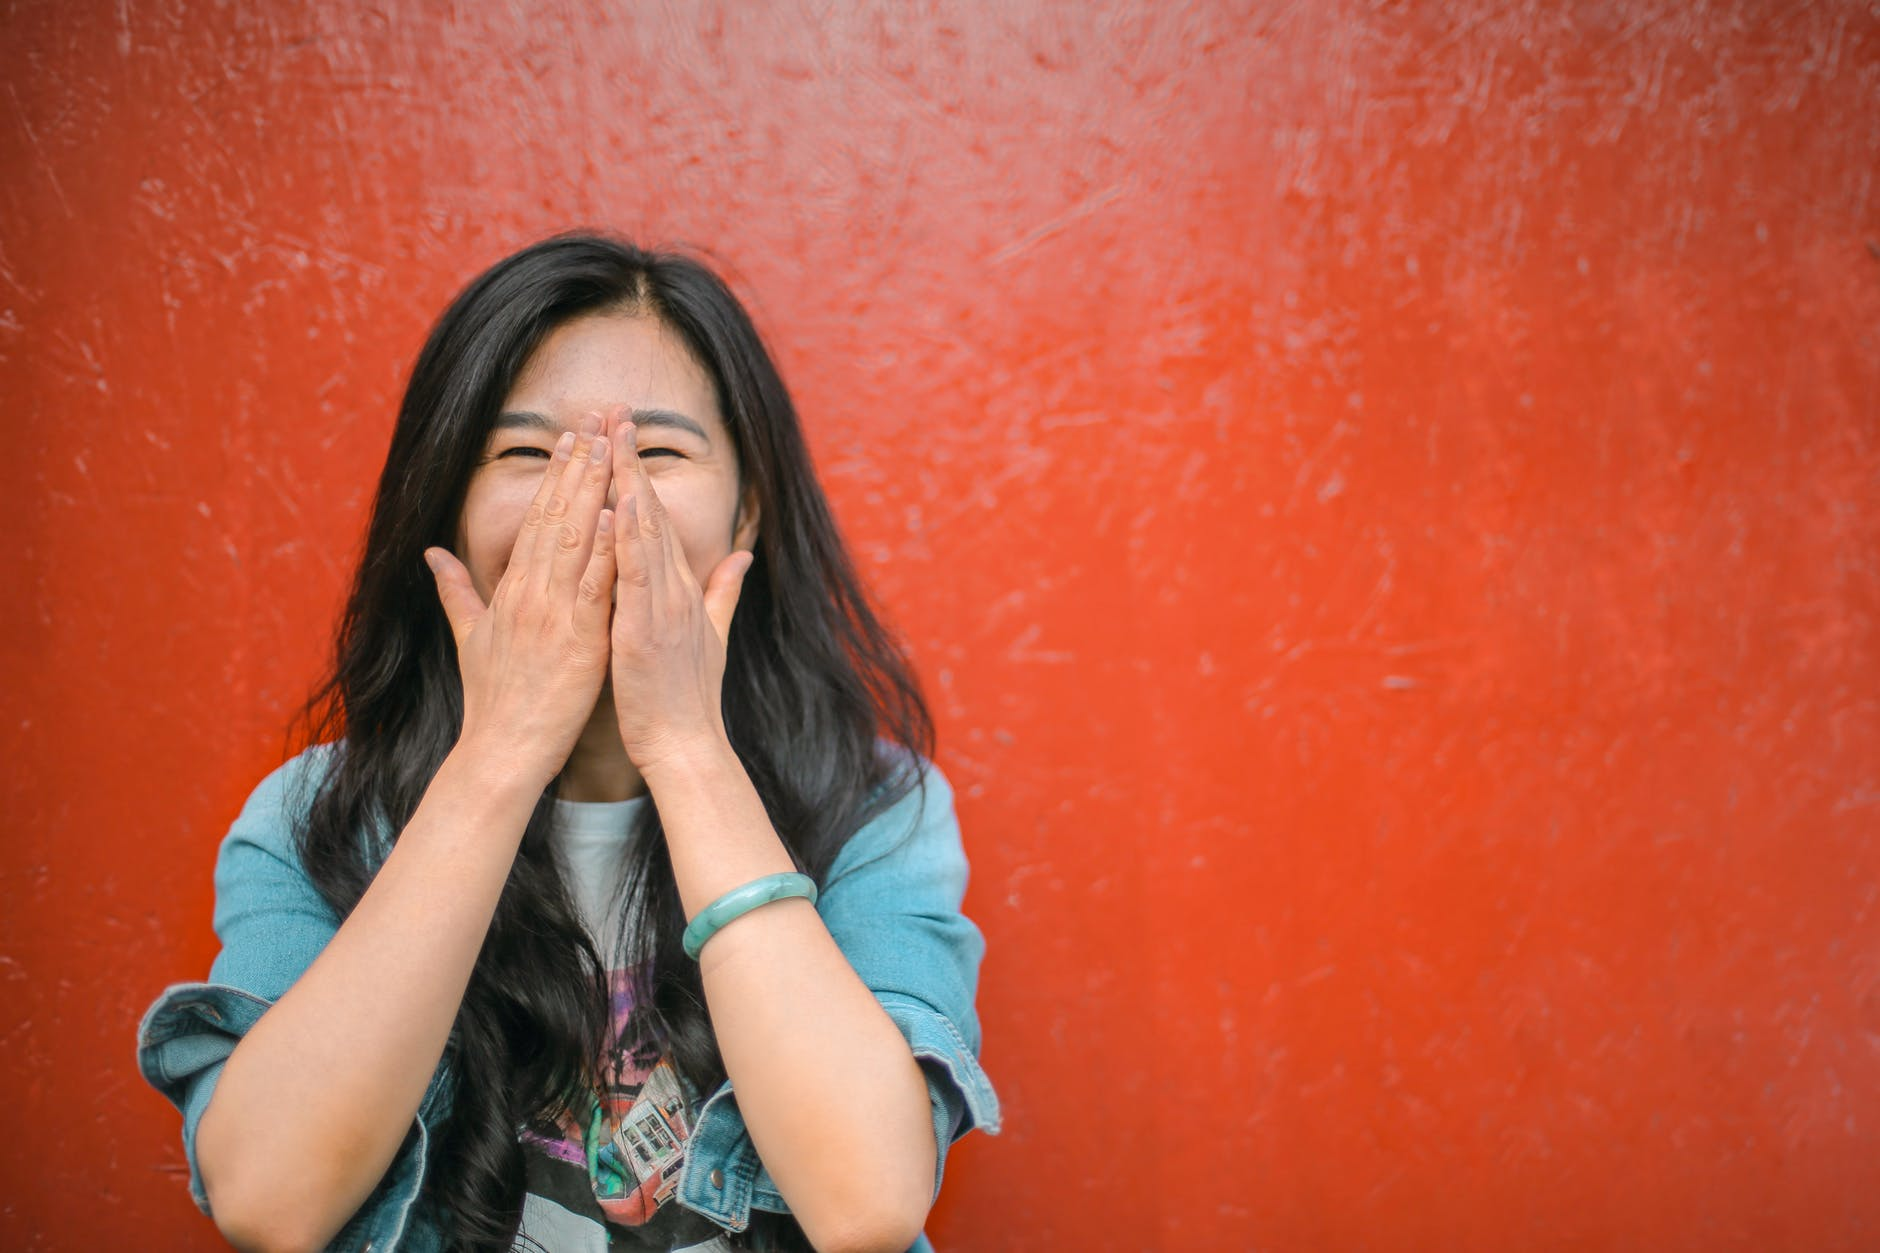 cheerful ethnic woman against vivid red painted wall